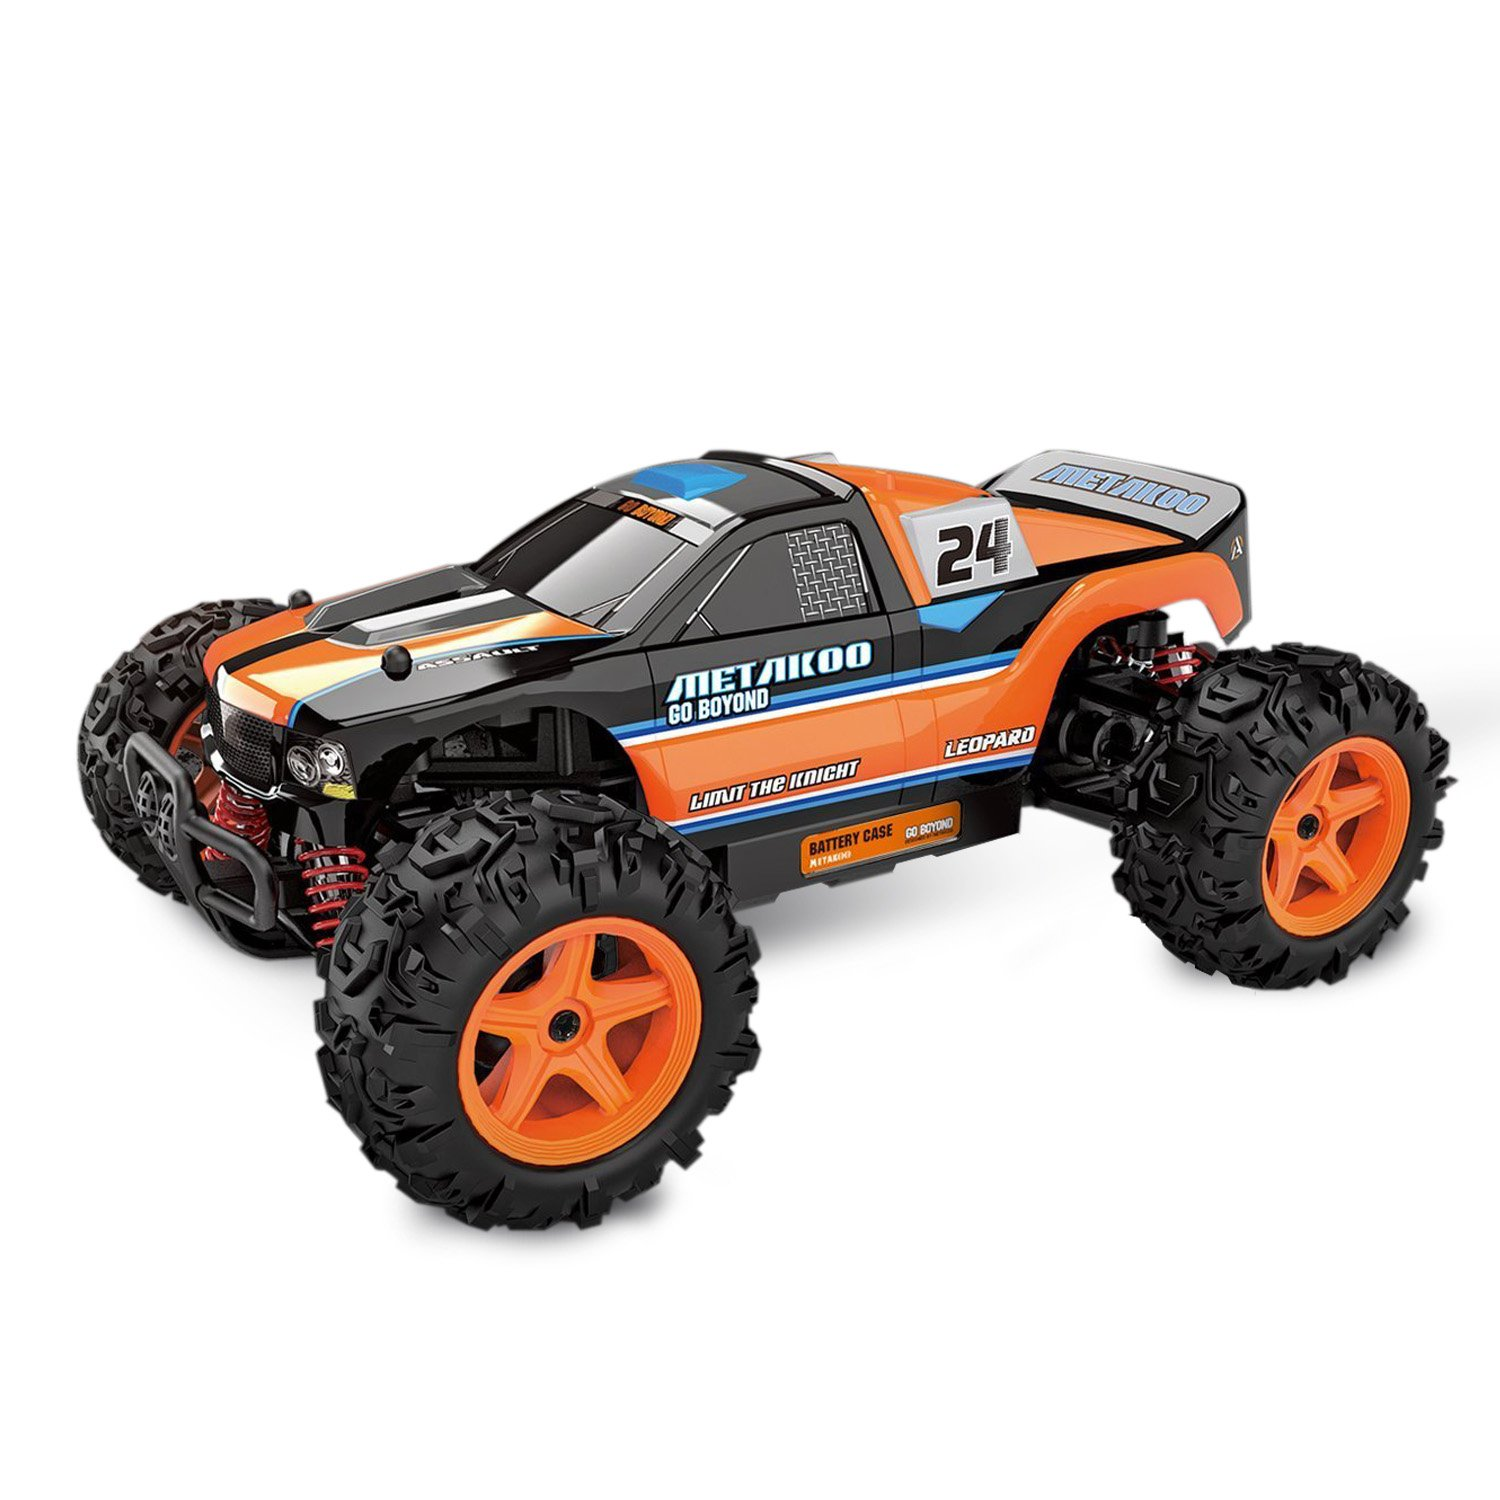 Metakoo Leopard Rc Cars Electric Fast Rc Trucks Off Road Rc